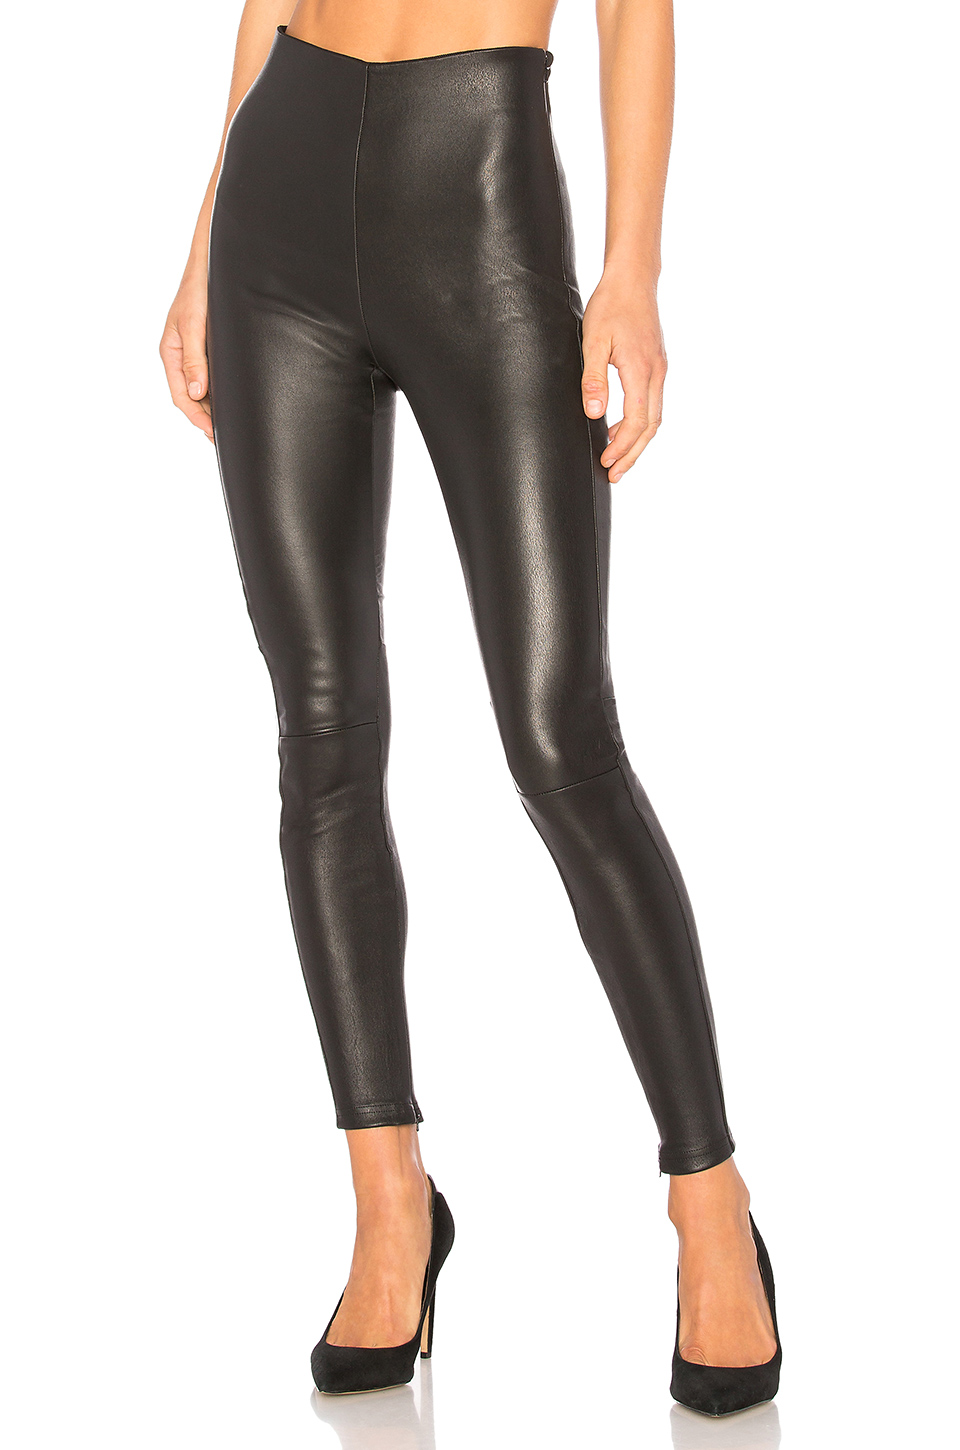 2019 discount sale professional prevalent High Waisted Leggings With Zippers, MLML